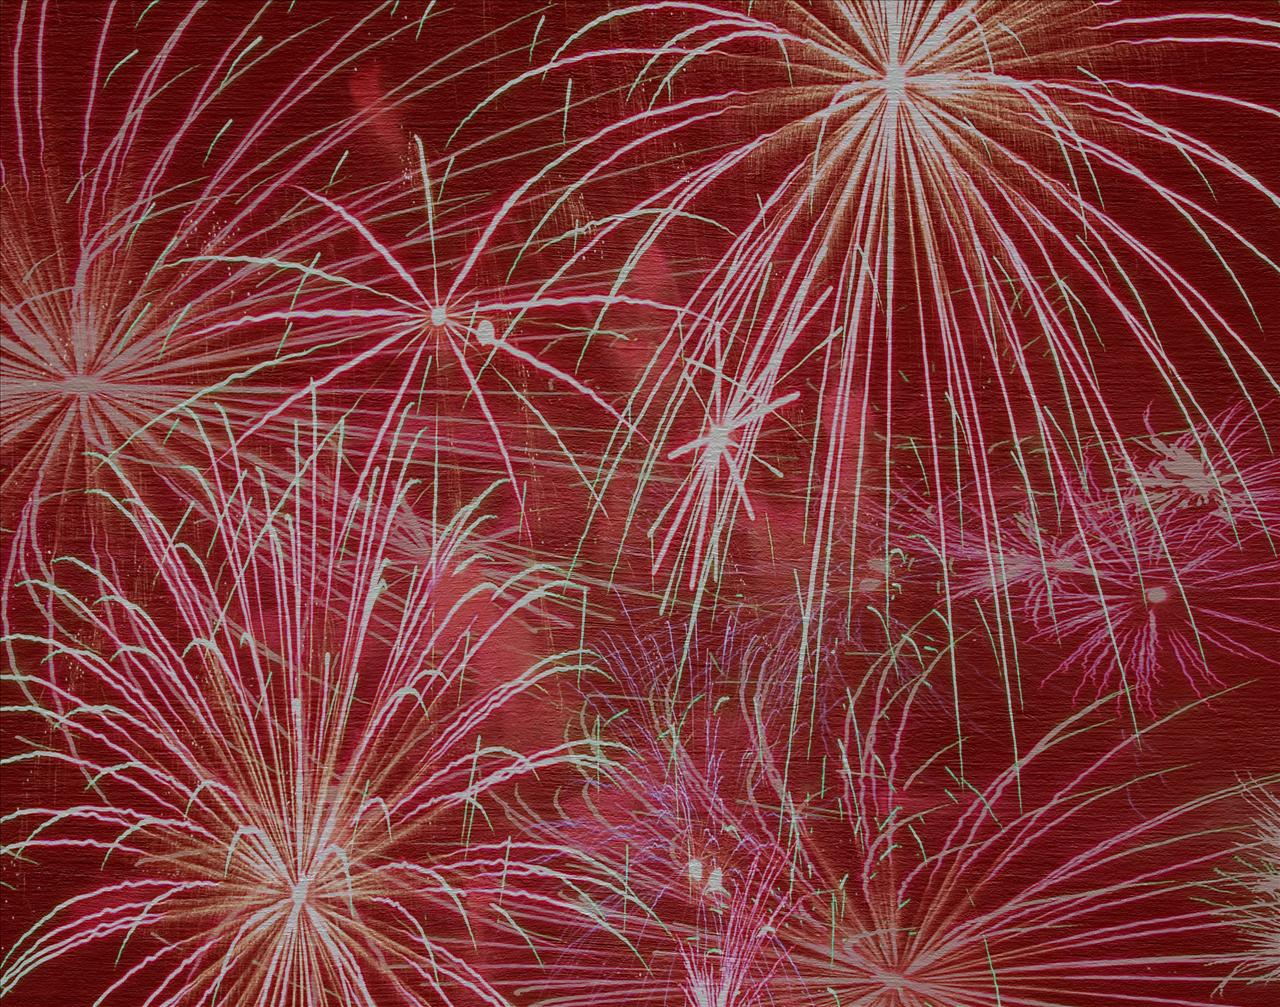 Red Fireworks Backgrounds